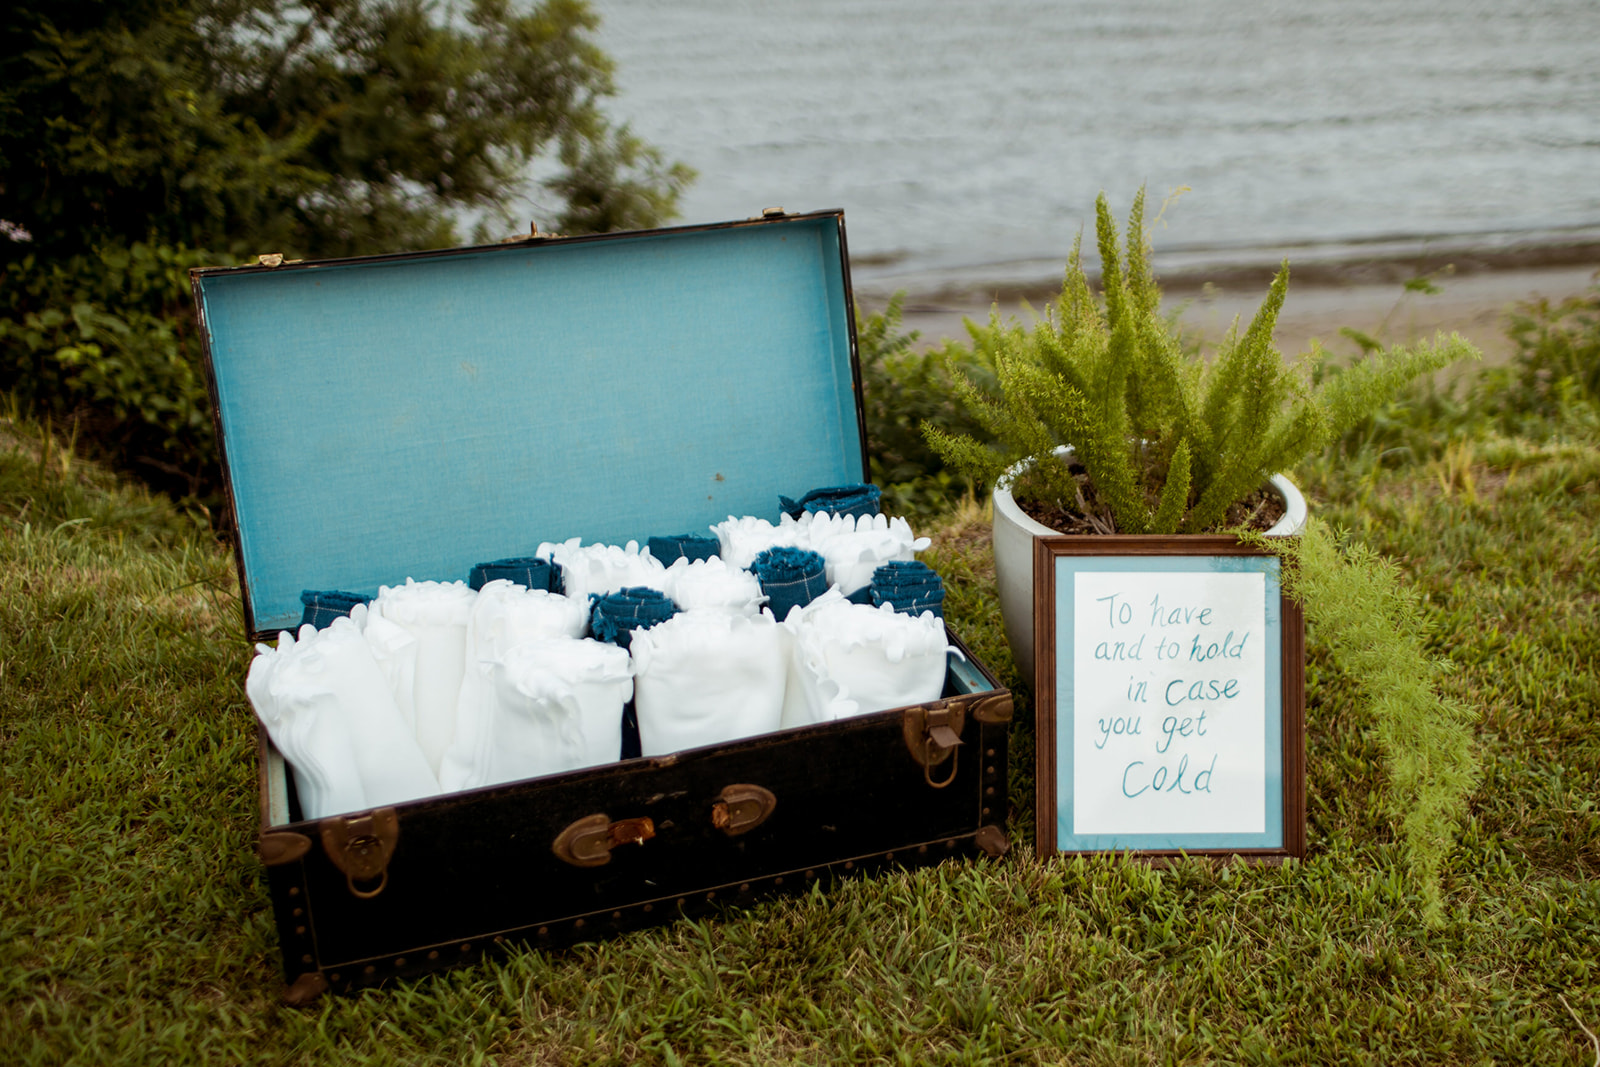 to have and to hold in case you get cold! Fleece blankets as Wedding favors for outdoor weddings - Pearl Weddings & Events